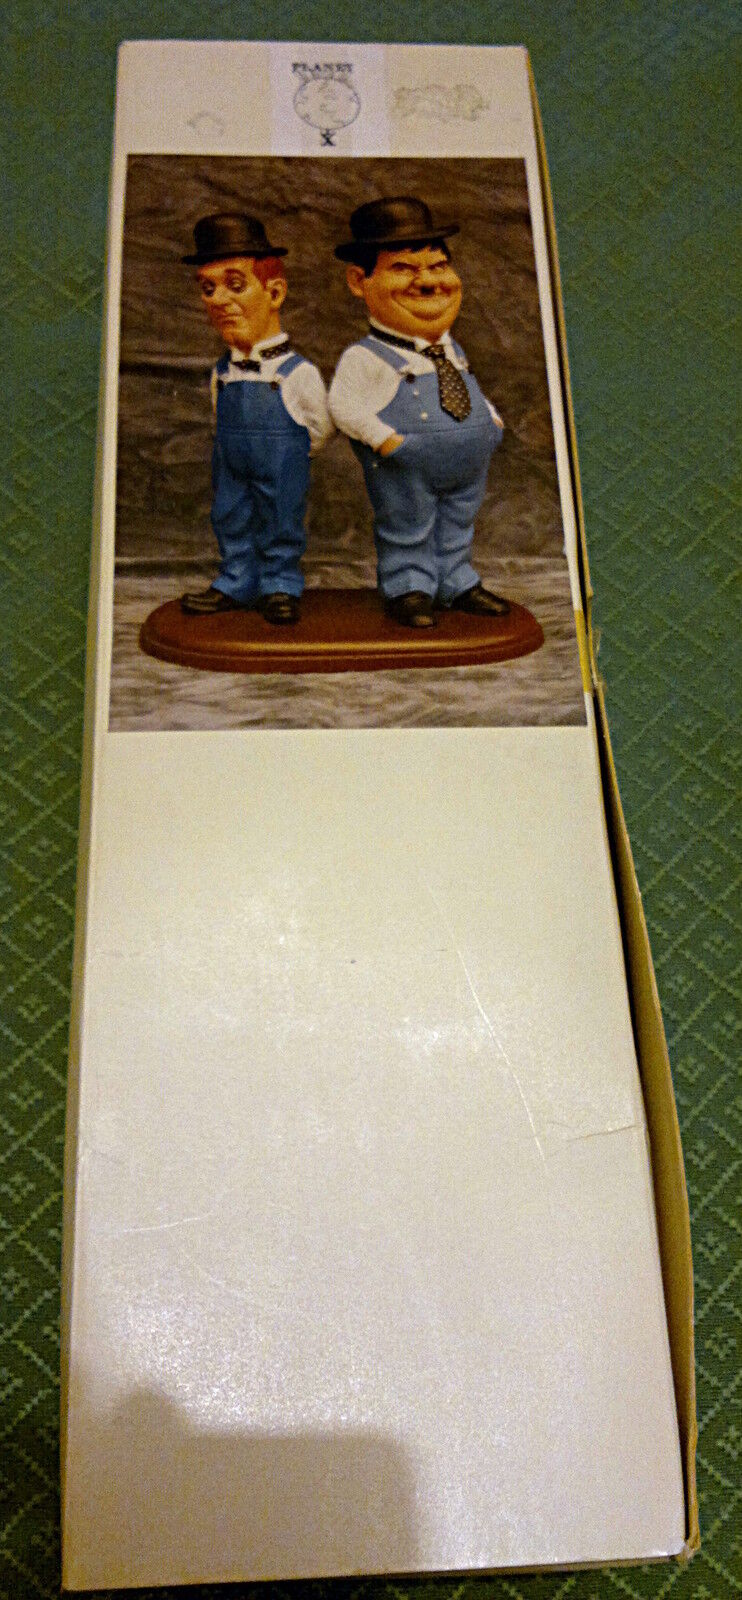 Stan Laurel and and and Oliver Hardy resin figures 04ae65